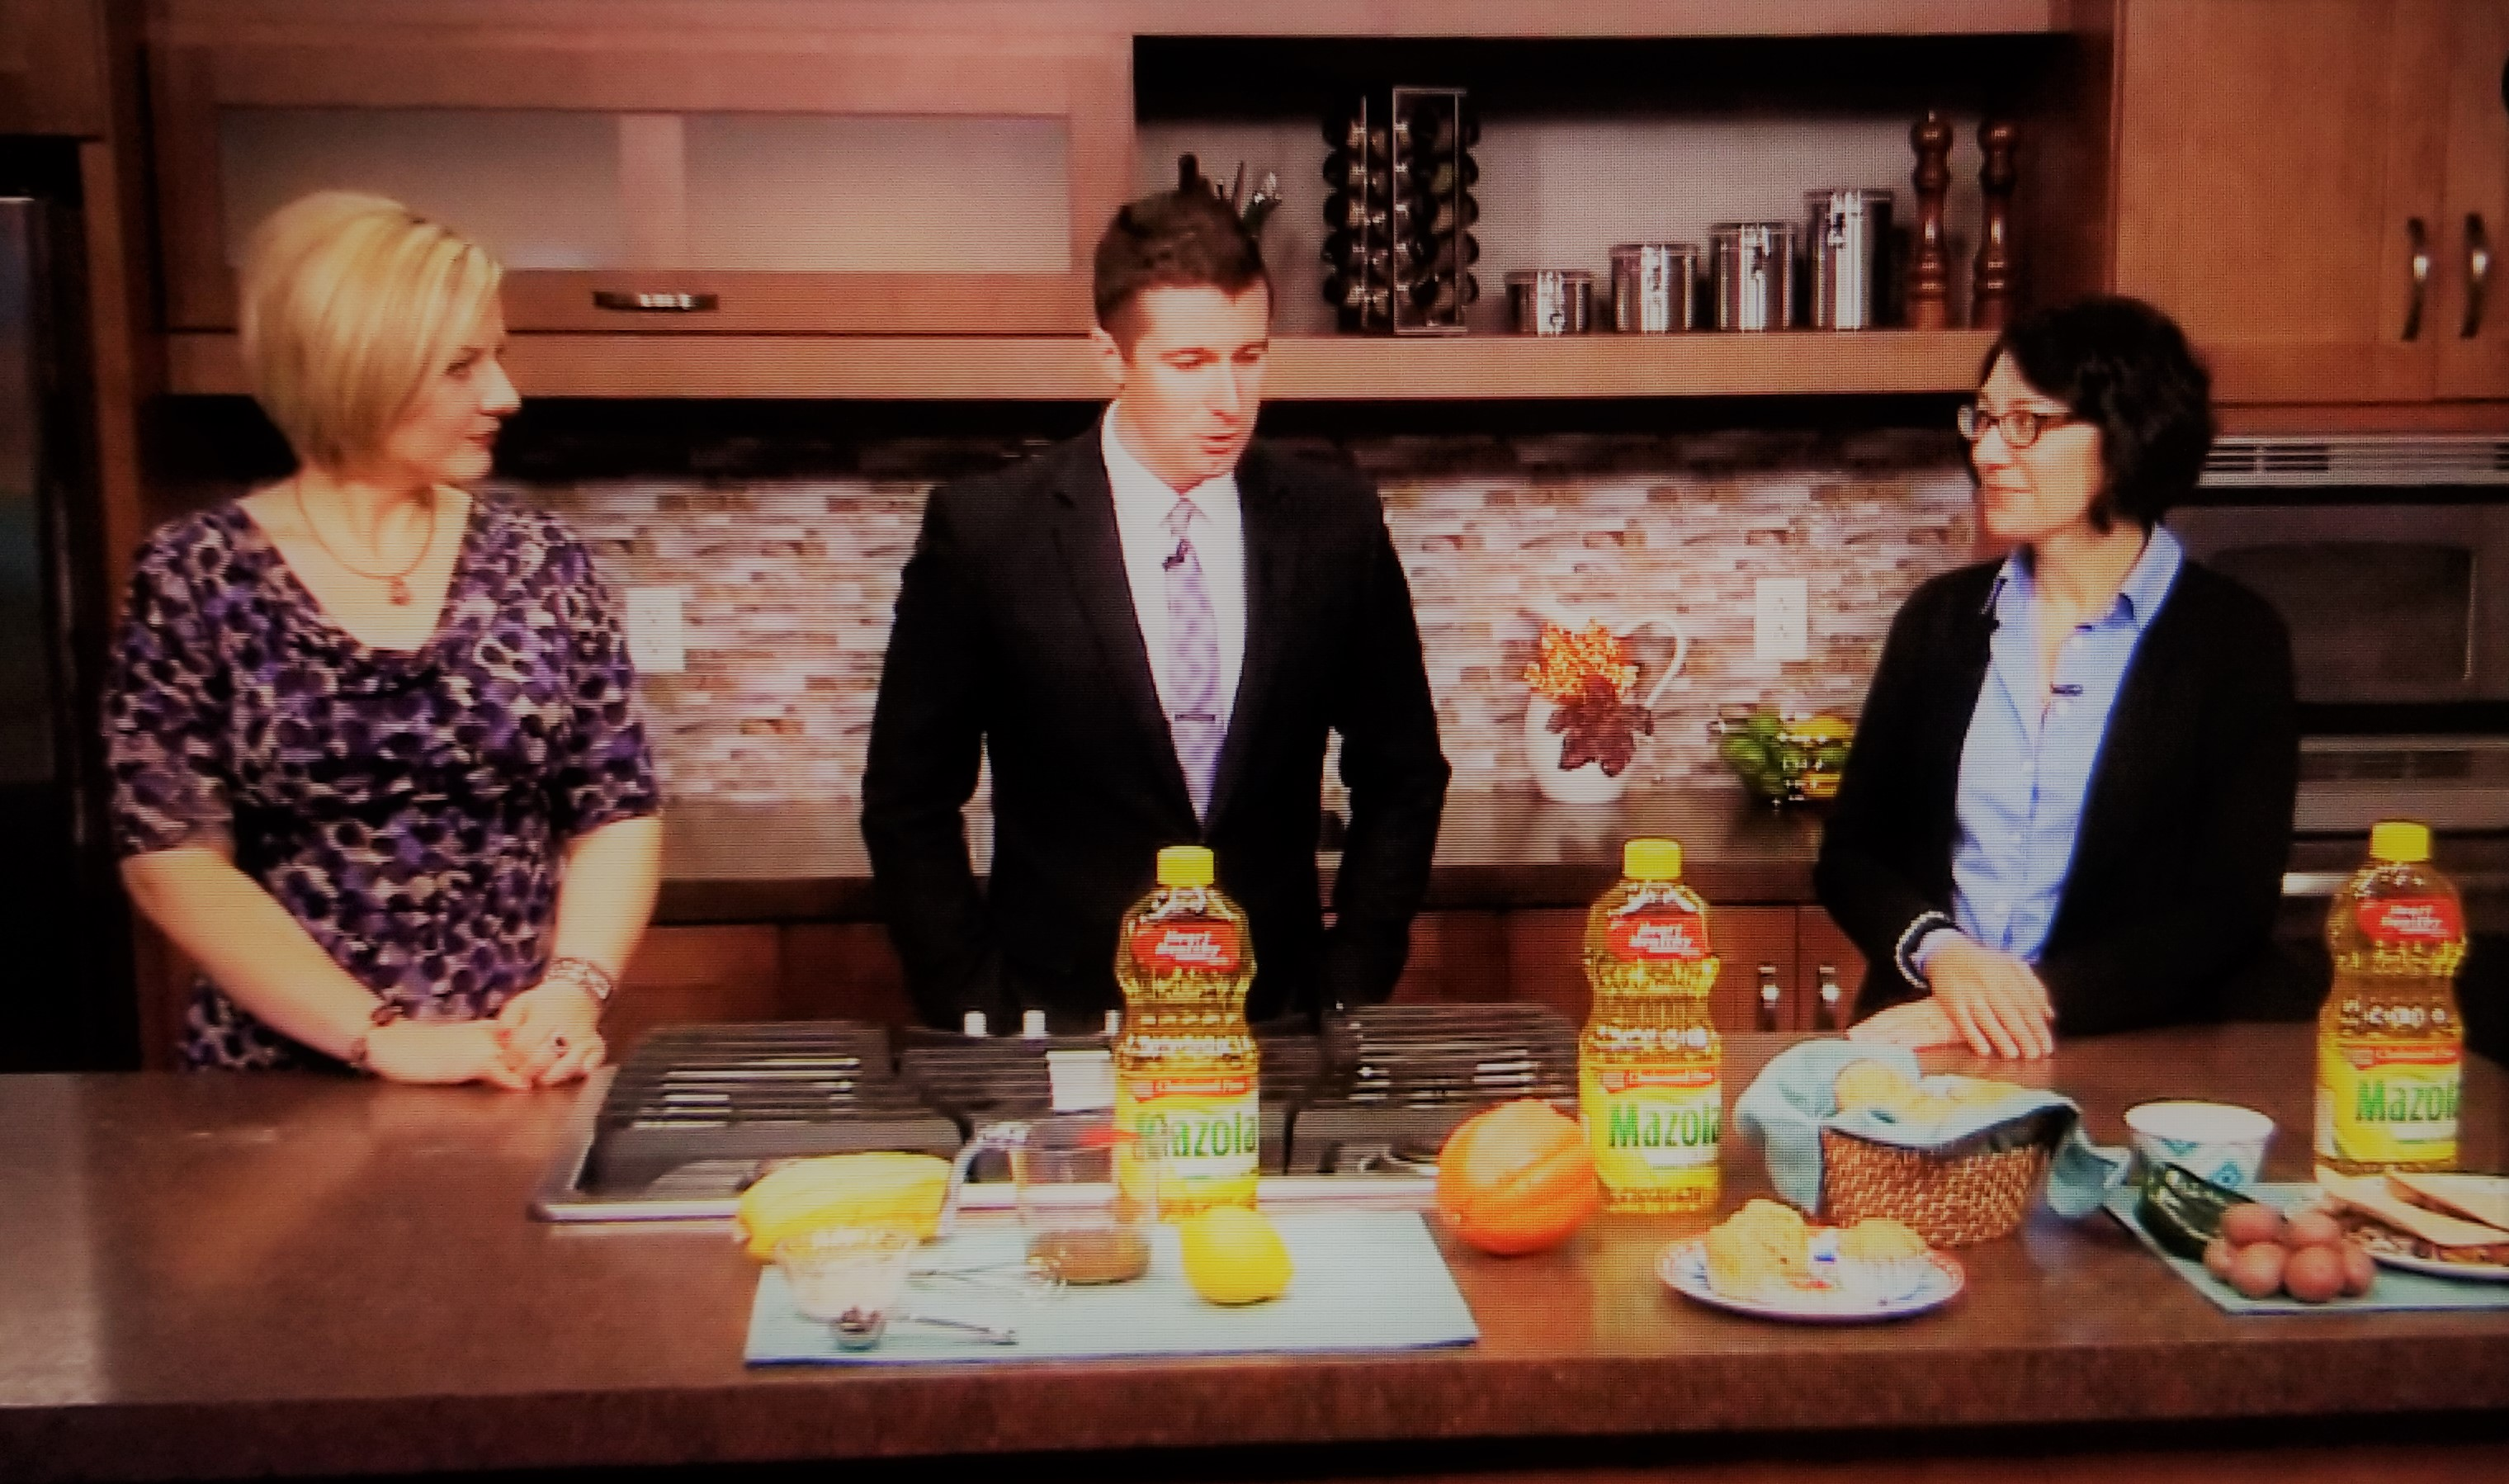 Lisa Andrews, RD, a registered dietitian, showcases recipes made quickly using Mazola Corn Oil as she discusses why it can be beneficial.